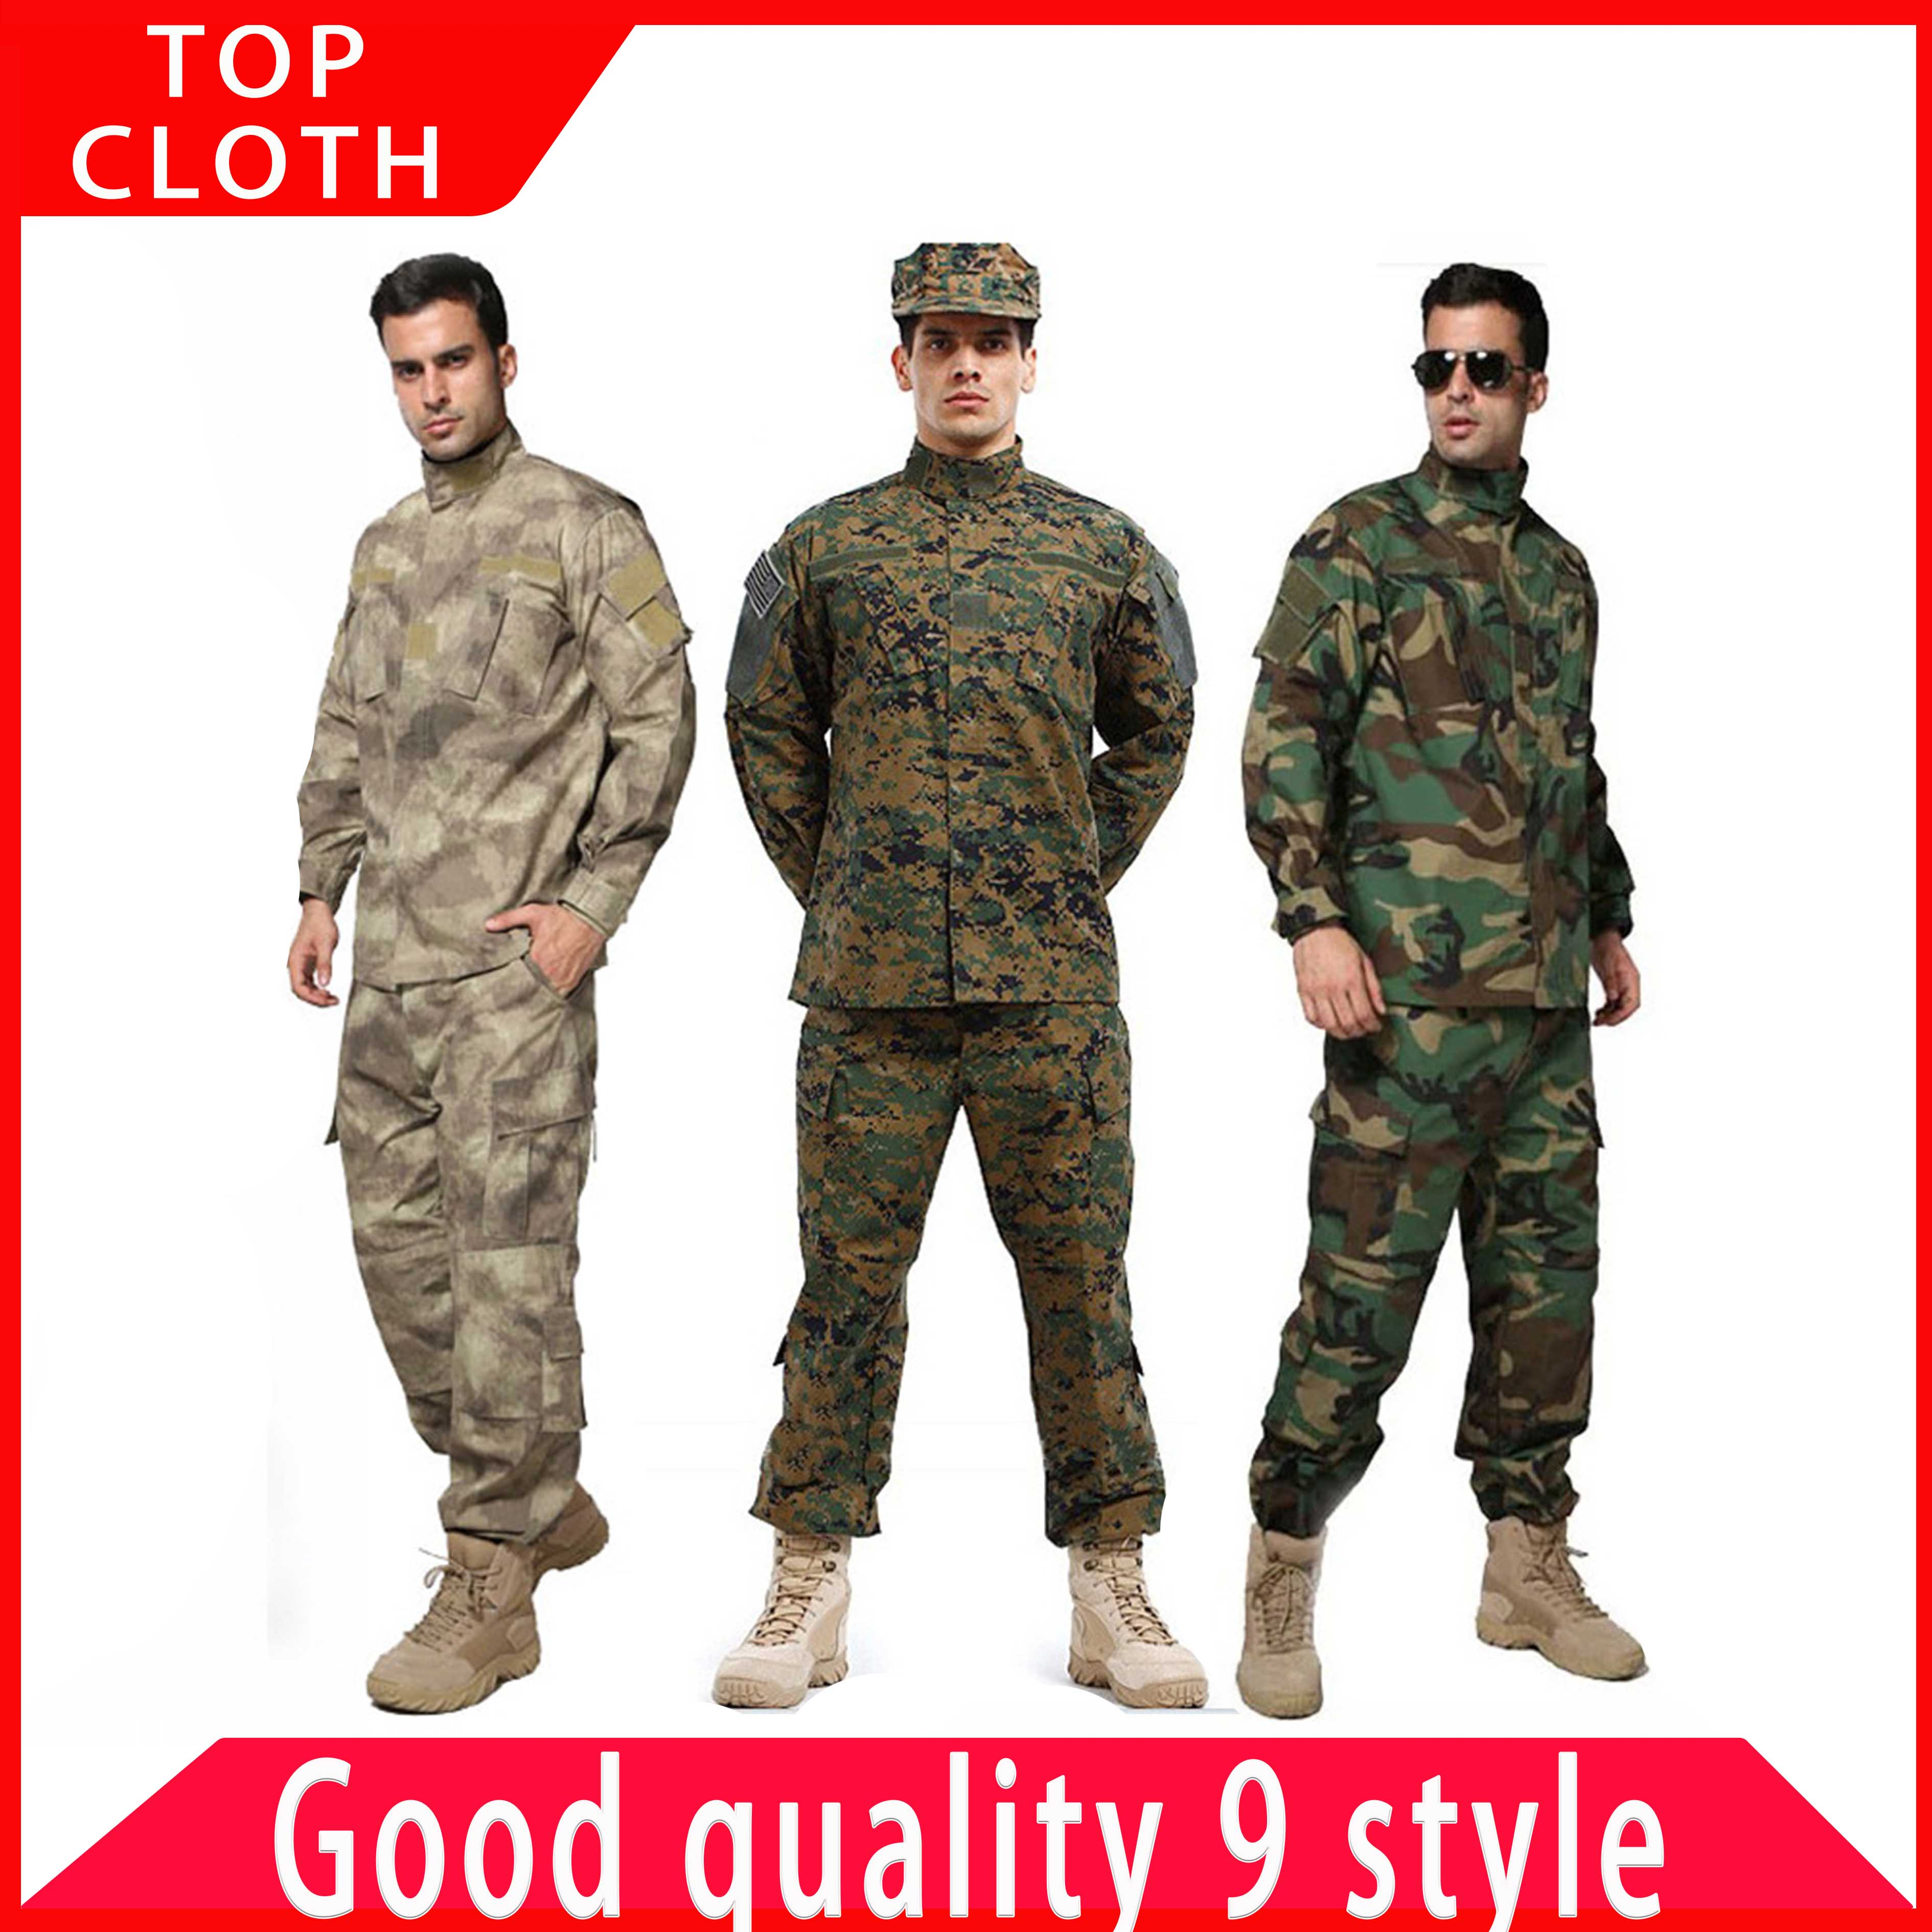 Male Military  Tactical Uniform US Army Suit  Airforce Desert Jungle Outdoor Hunting Costumes ACU Camo Camouflage Combat Jacket